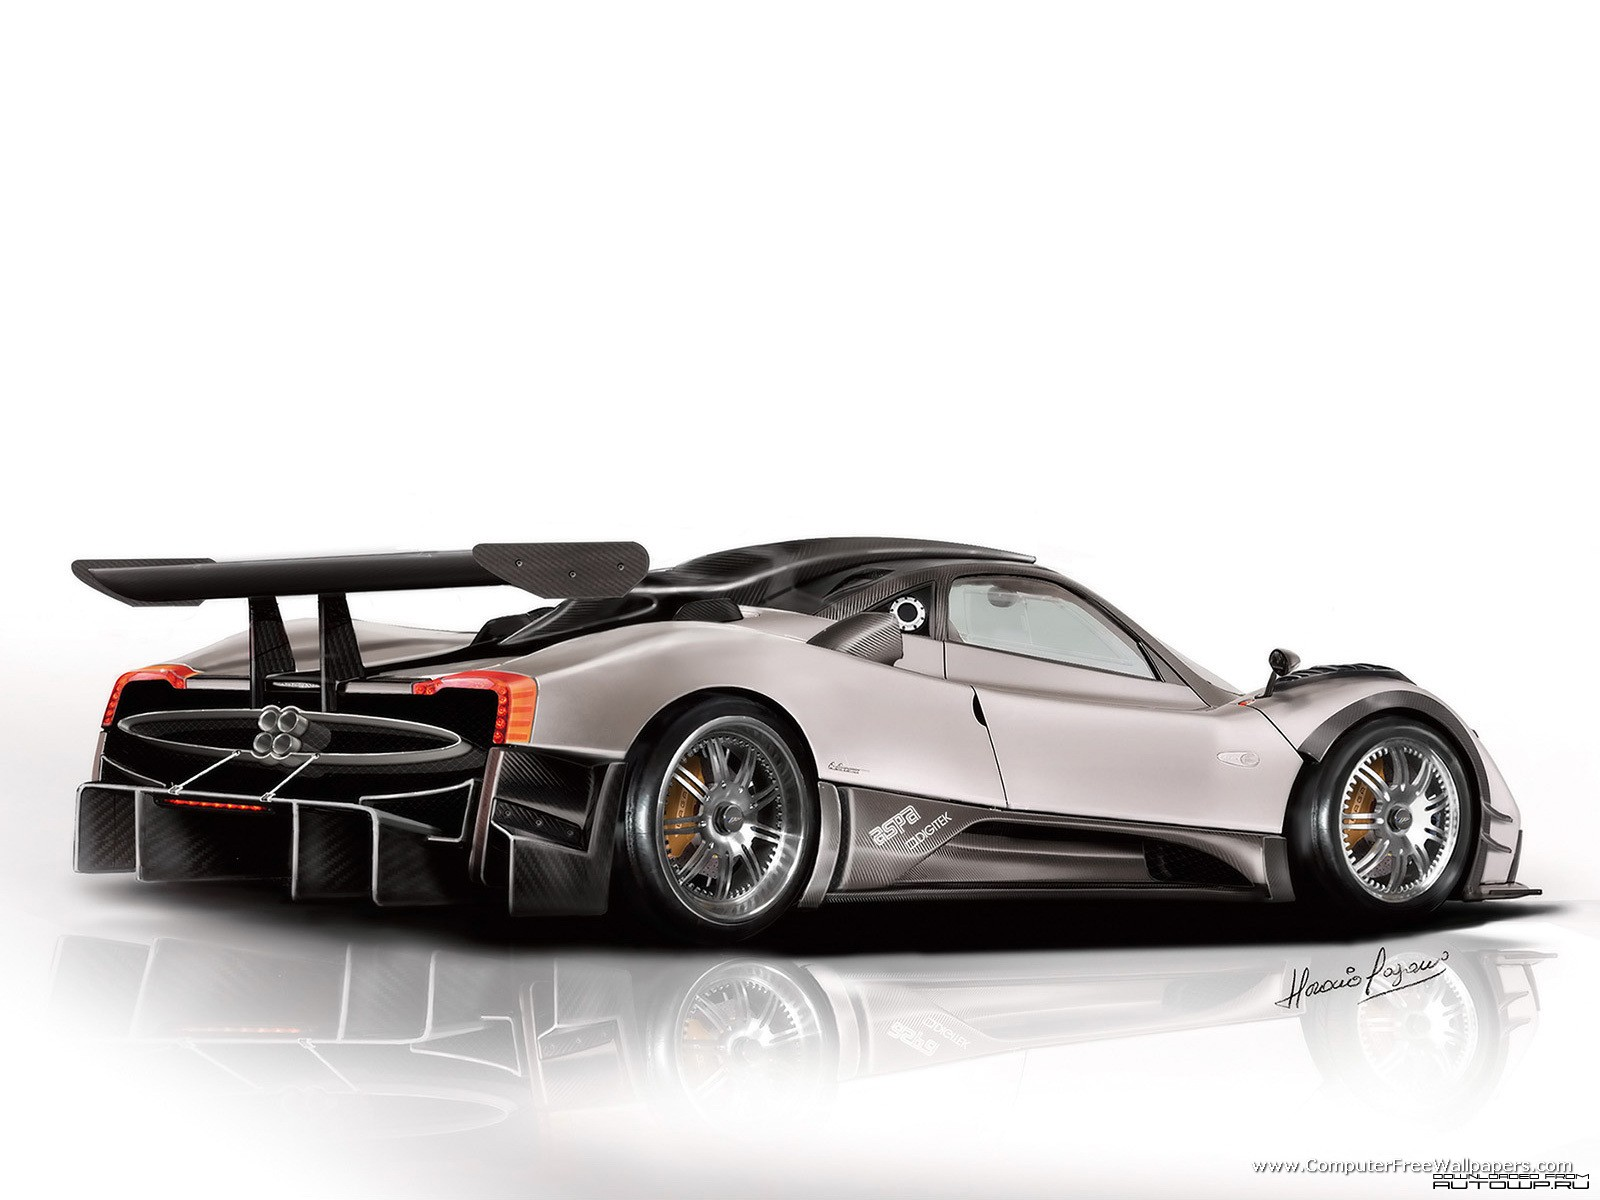 Pagani-car-wallpaper-wp42874-1